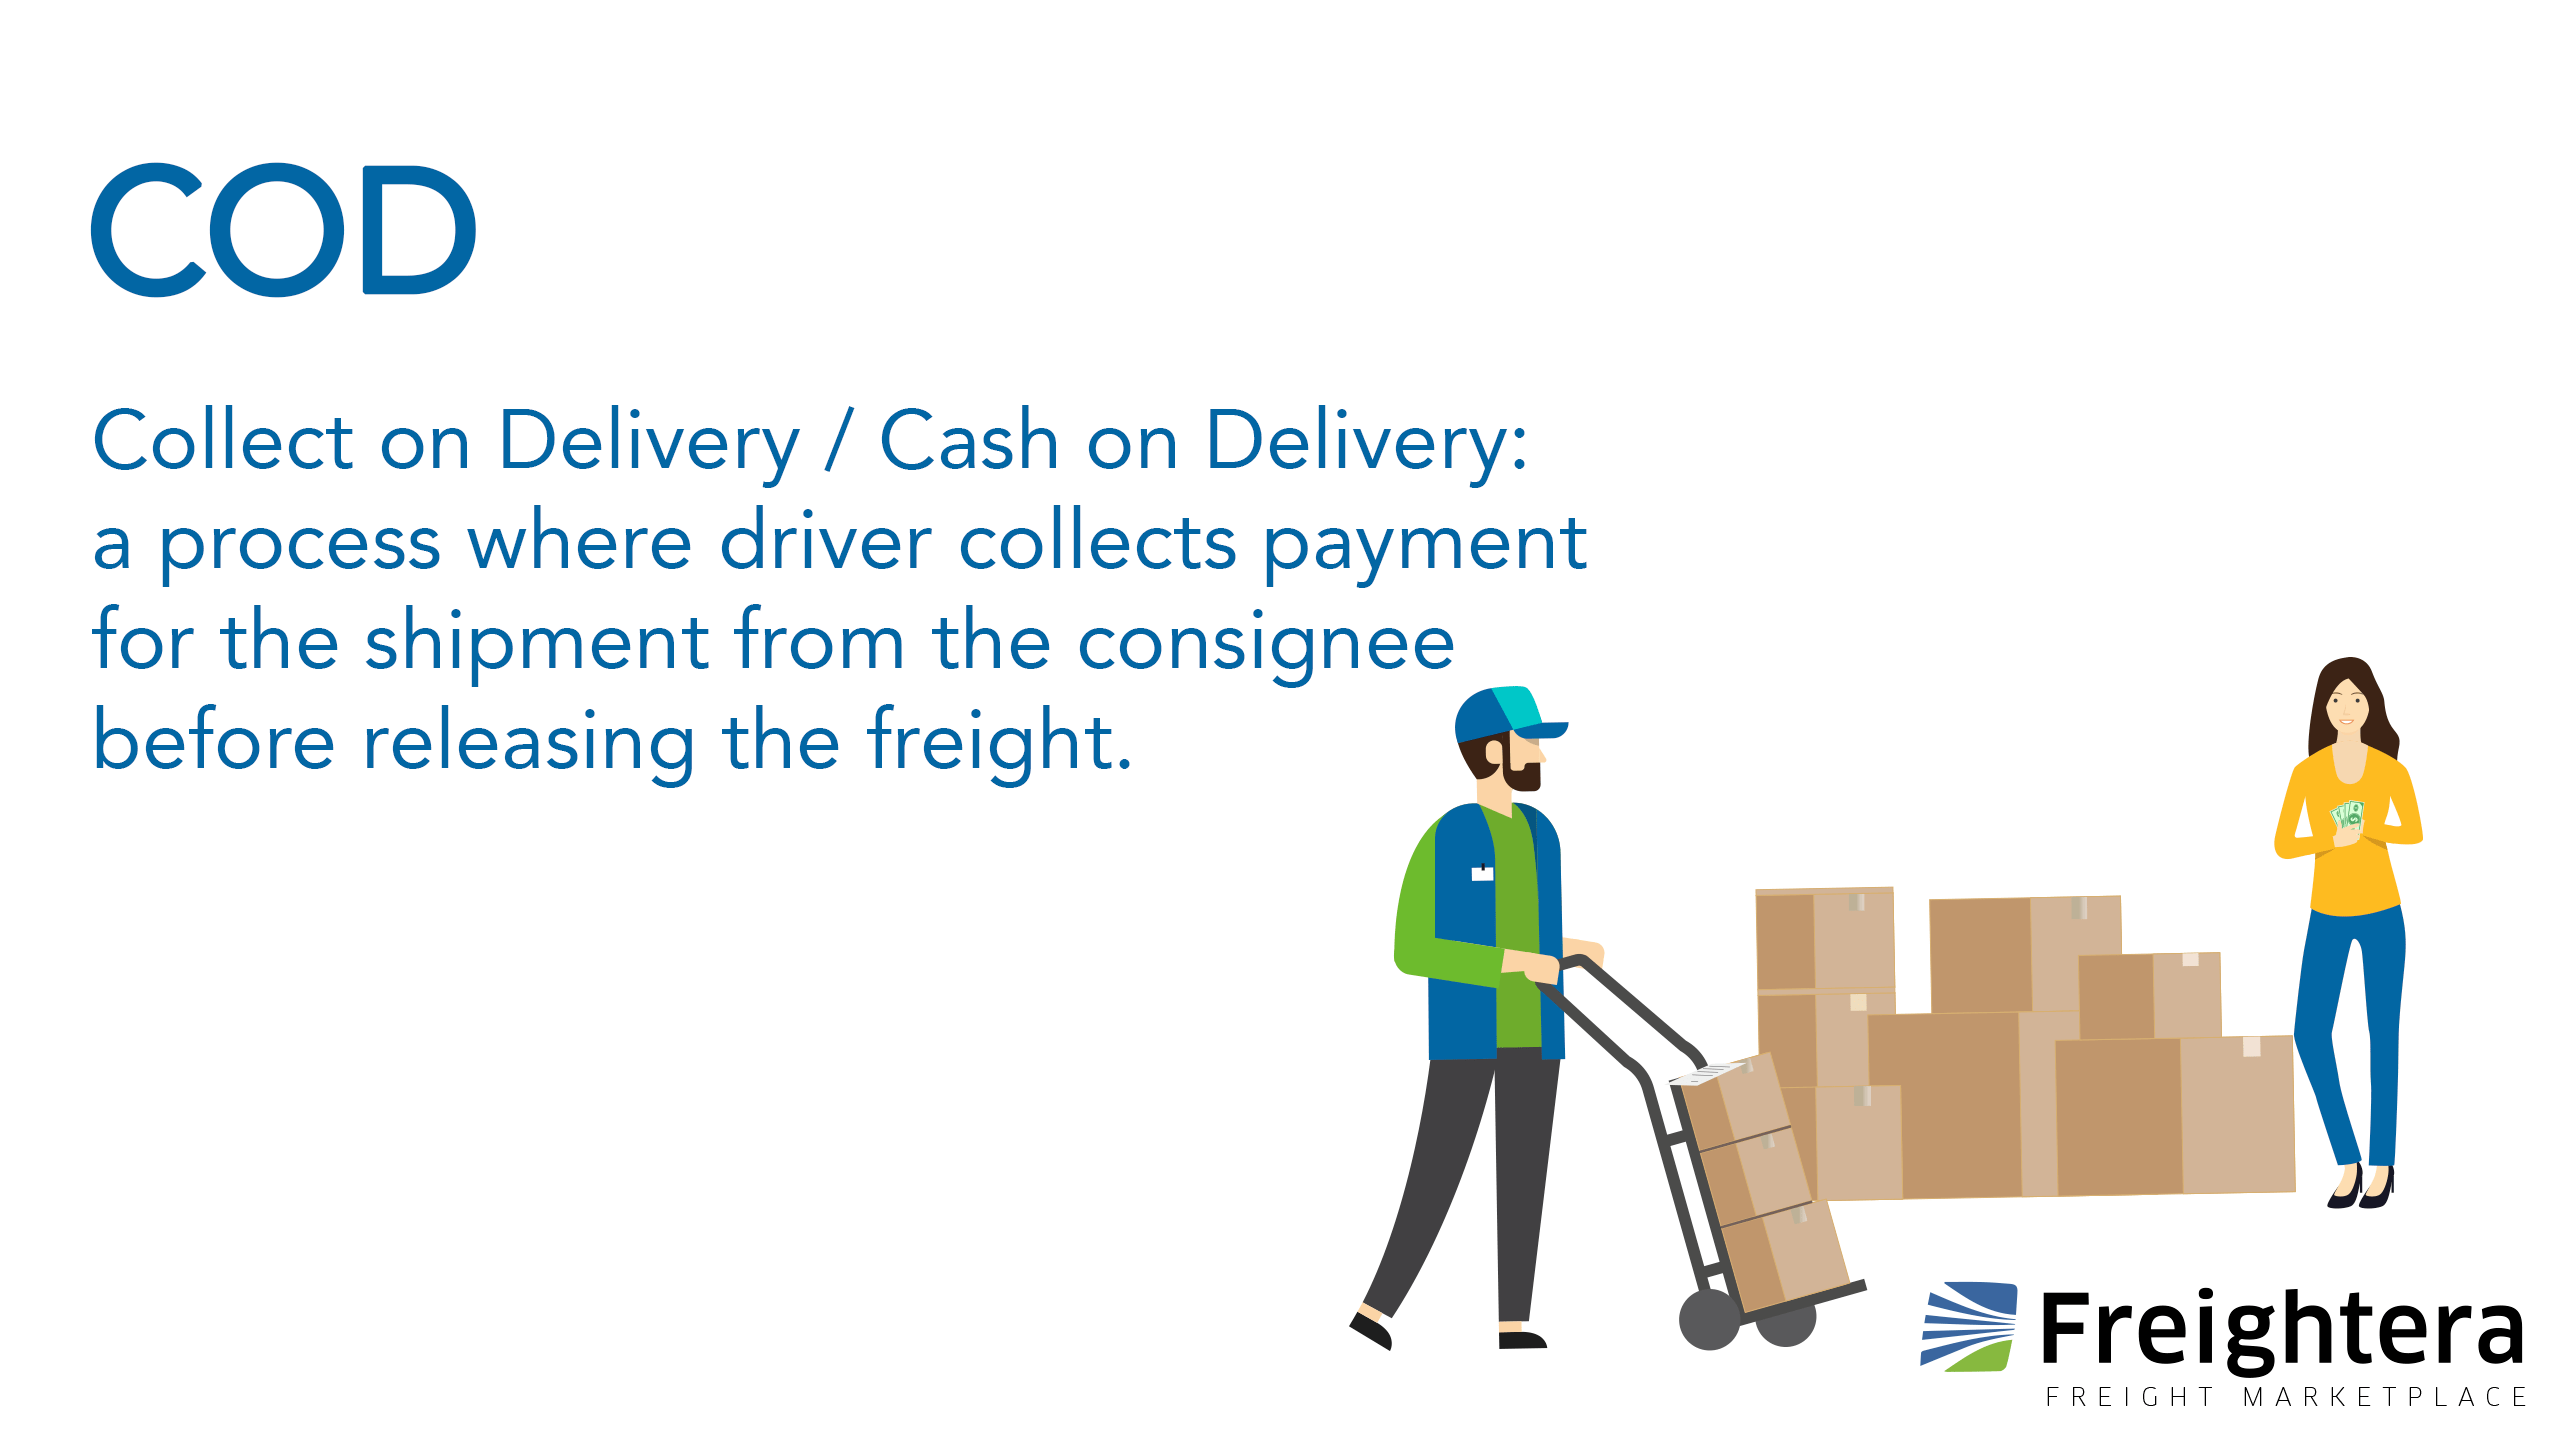 Freightera Cash on Delivery COD freight shipping definition